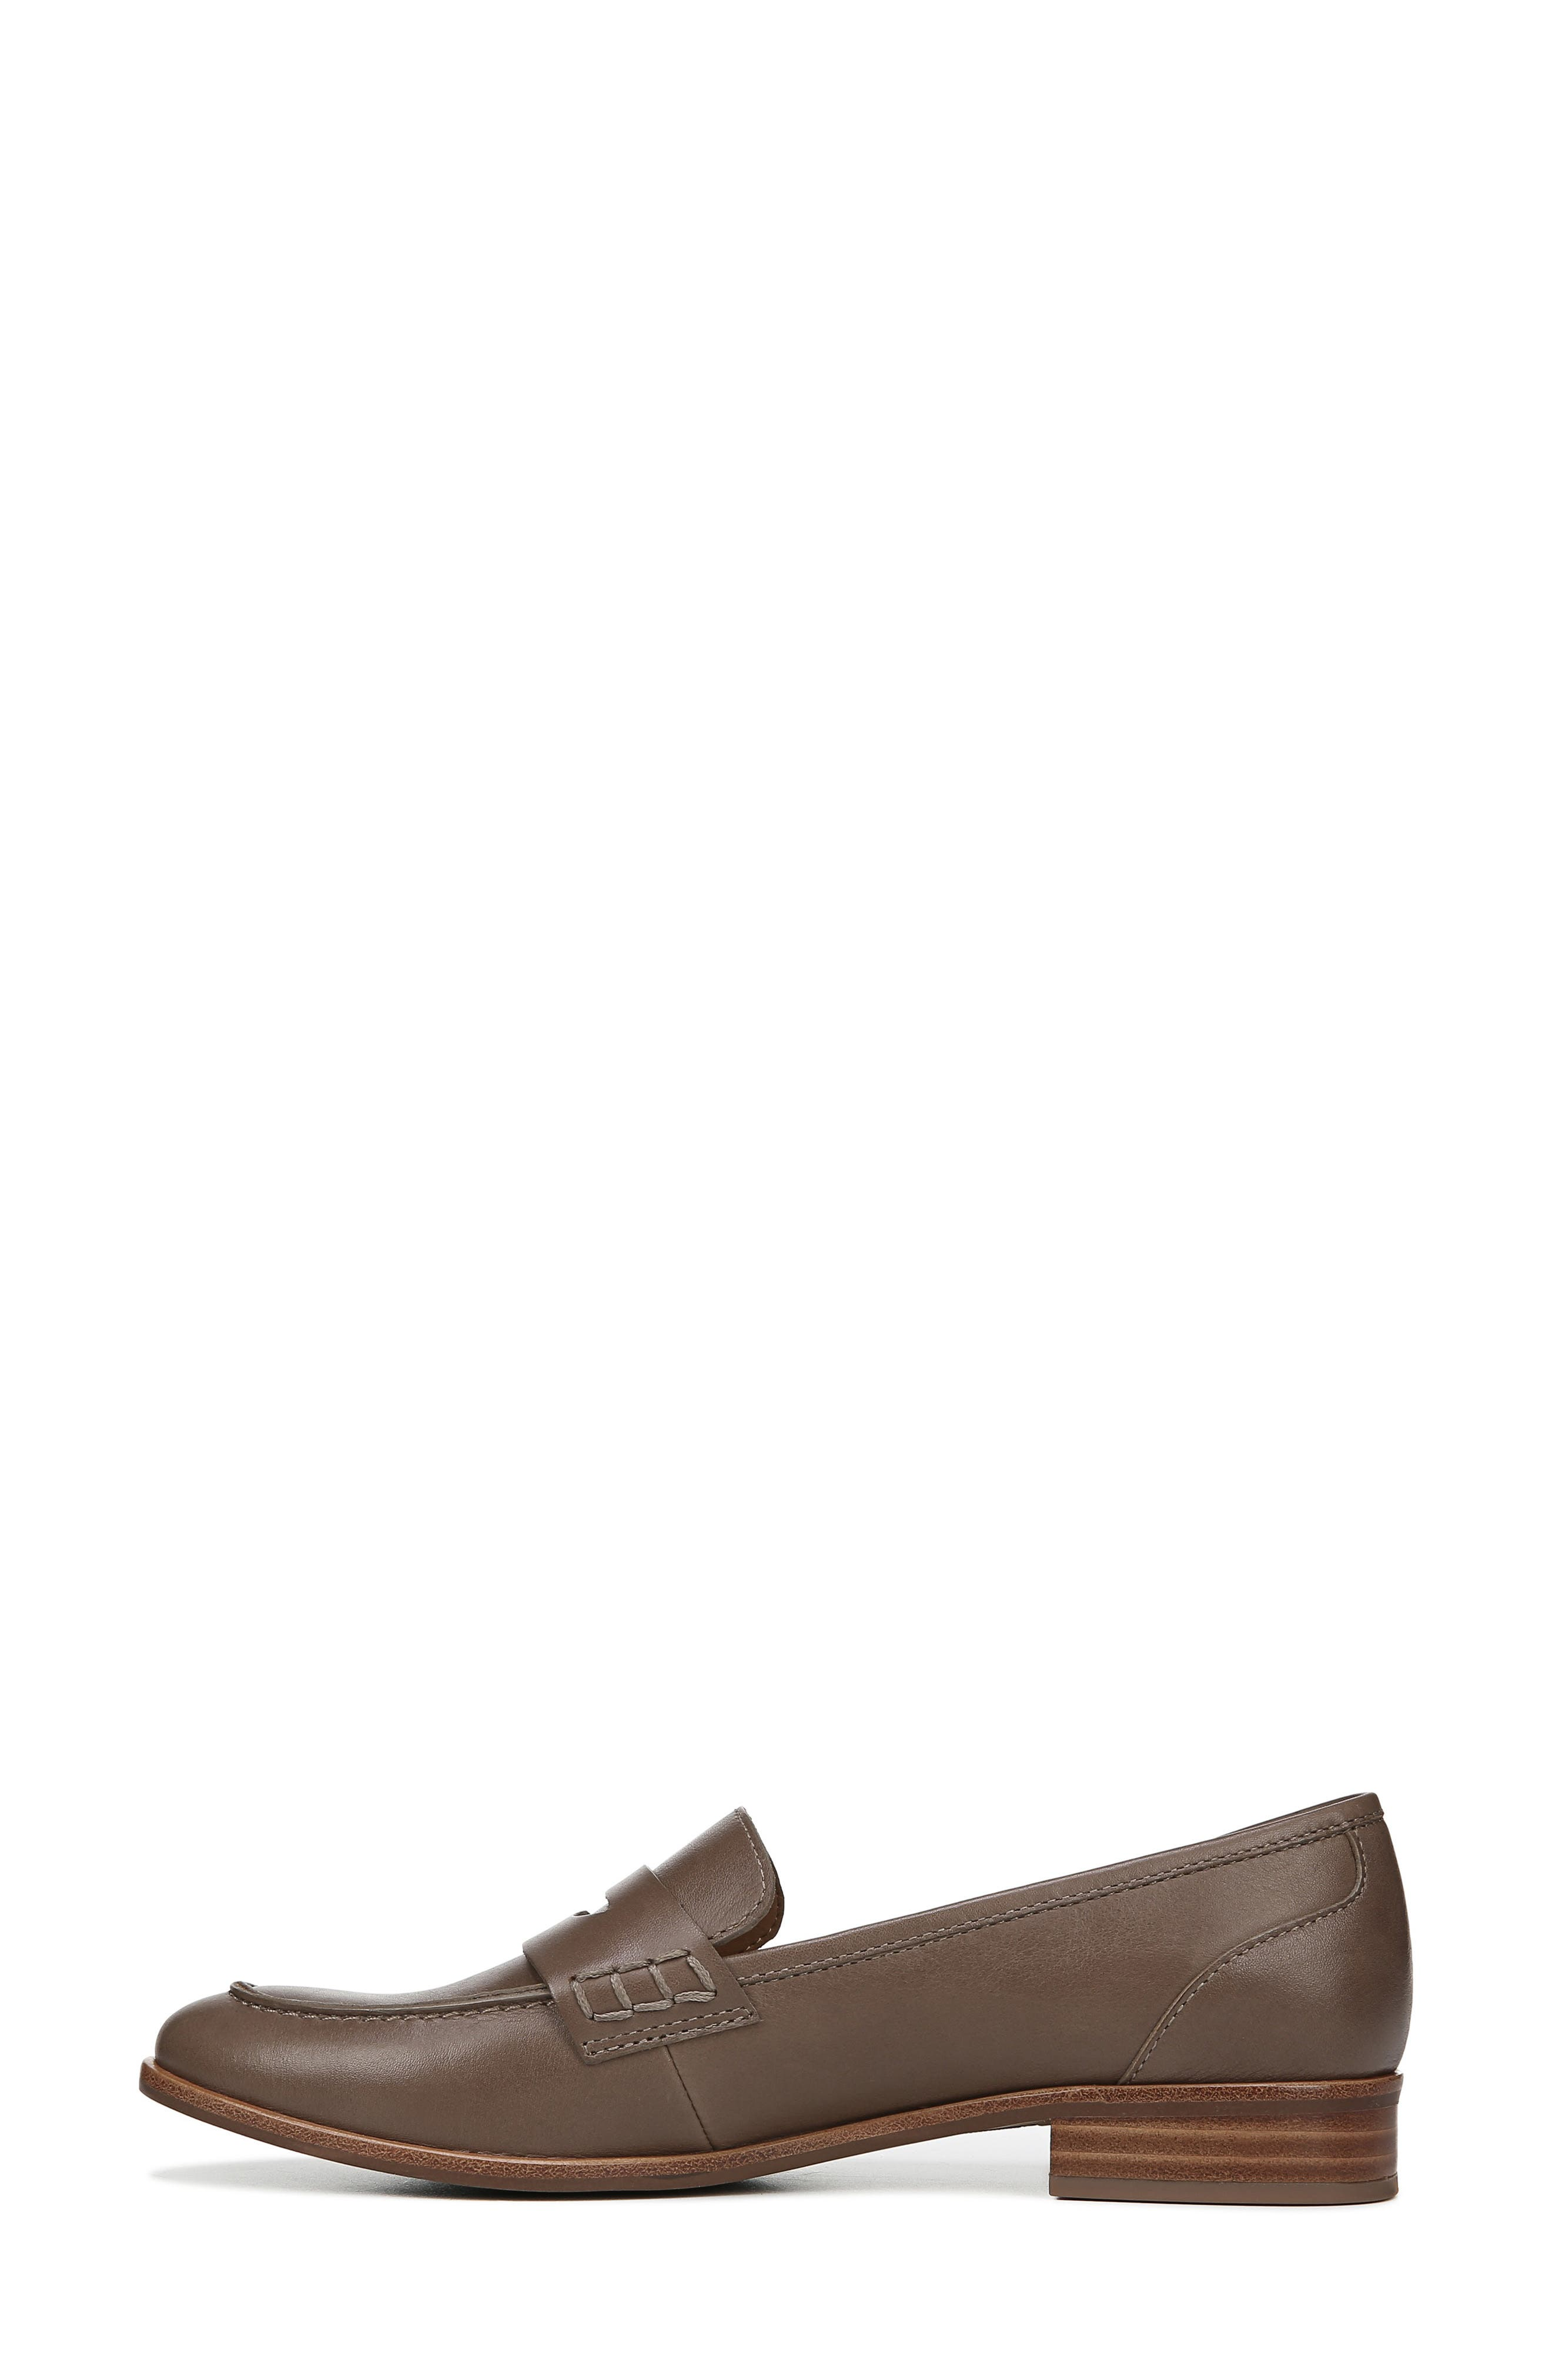 SARTO BY FRANCO SARTO,                             'Jolette' Penny Loafer,                             Alternate thumbnail 9, color,                             DARK PUTTY LEATHER